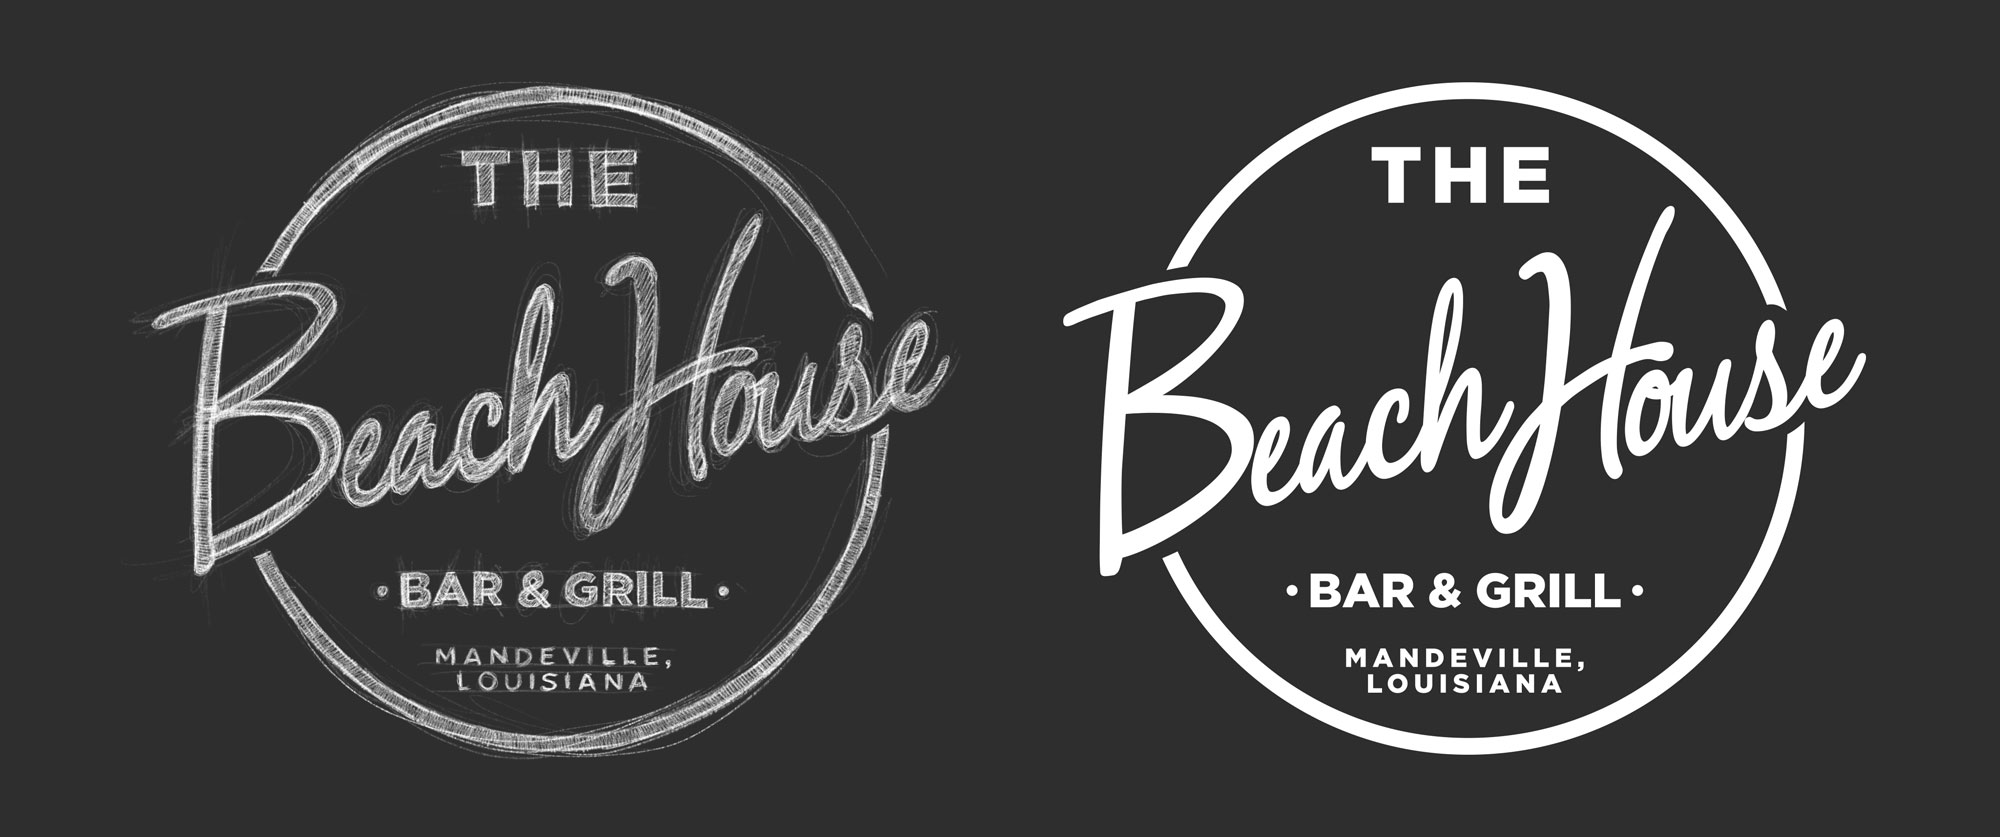 Logo Design Mockups for the Beach House